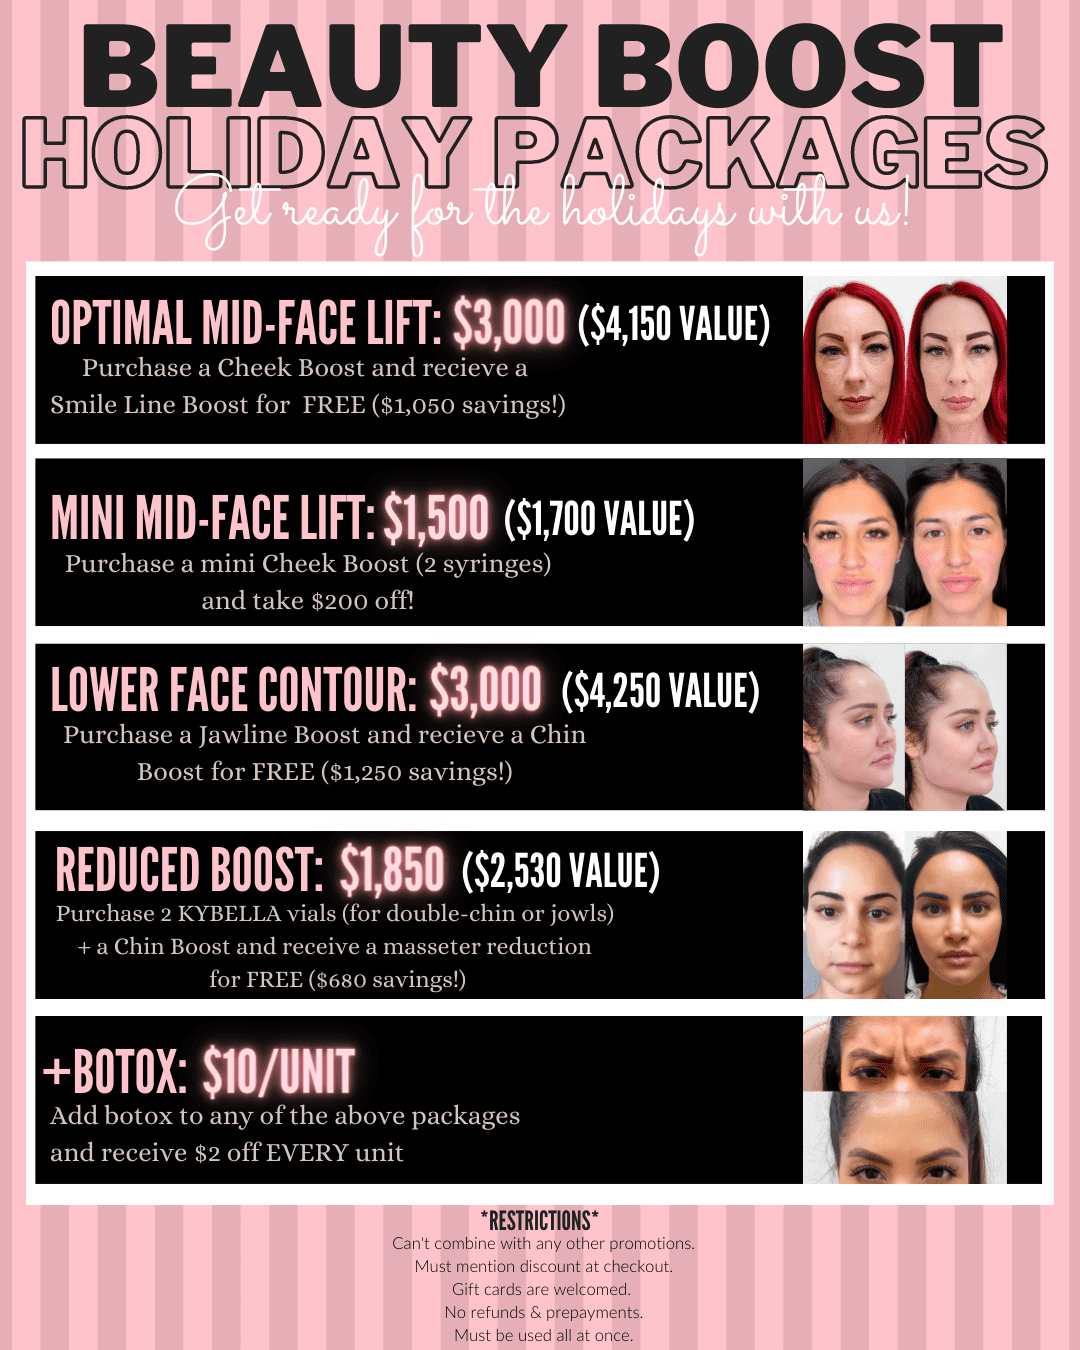 Beauty Boost Holiday Packages